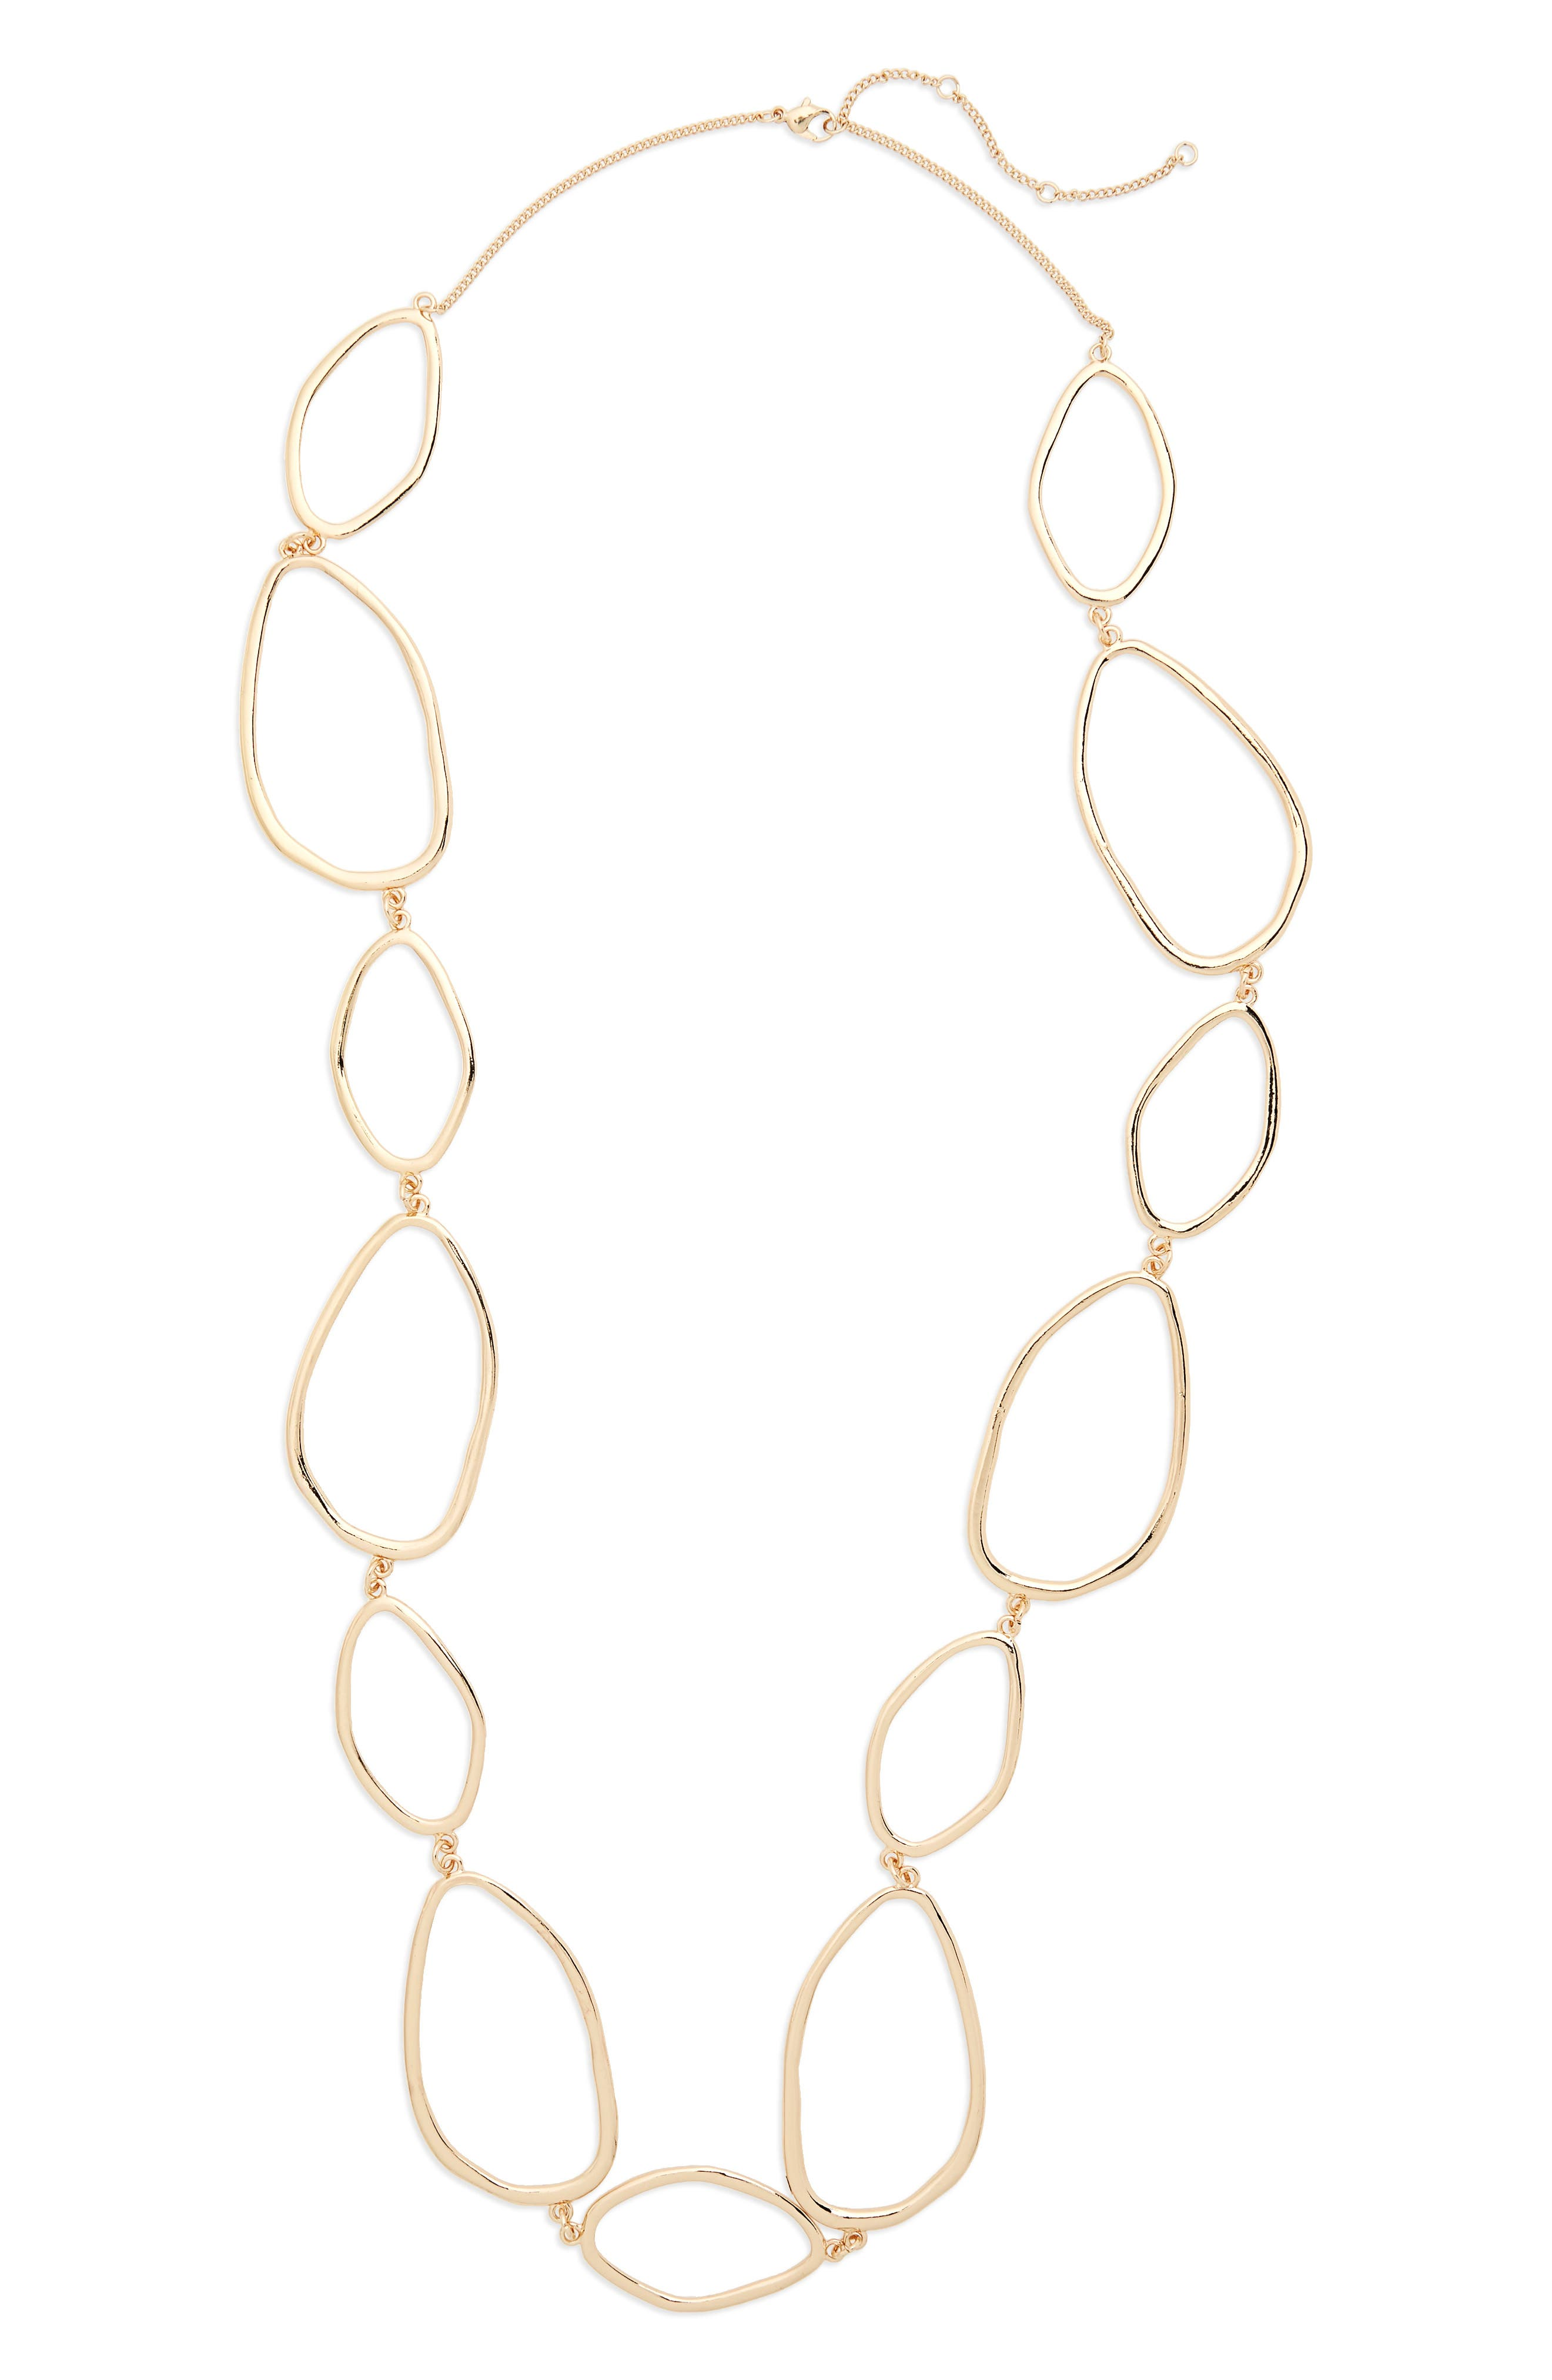 Organic Link Necklace,                         Main,                         color, Gold